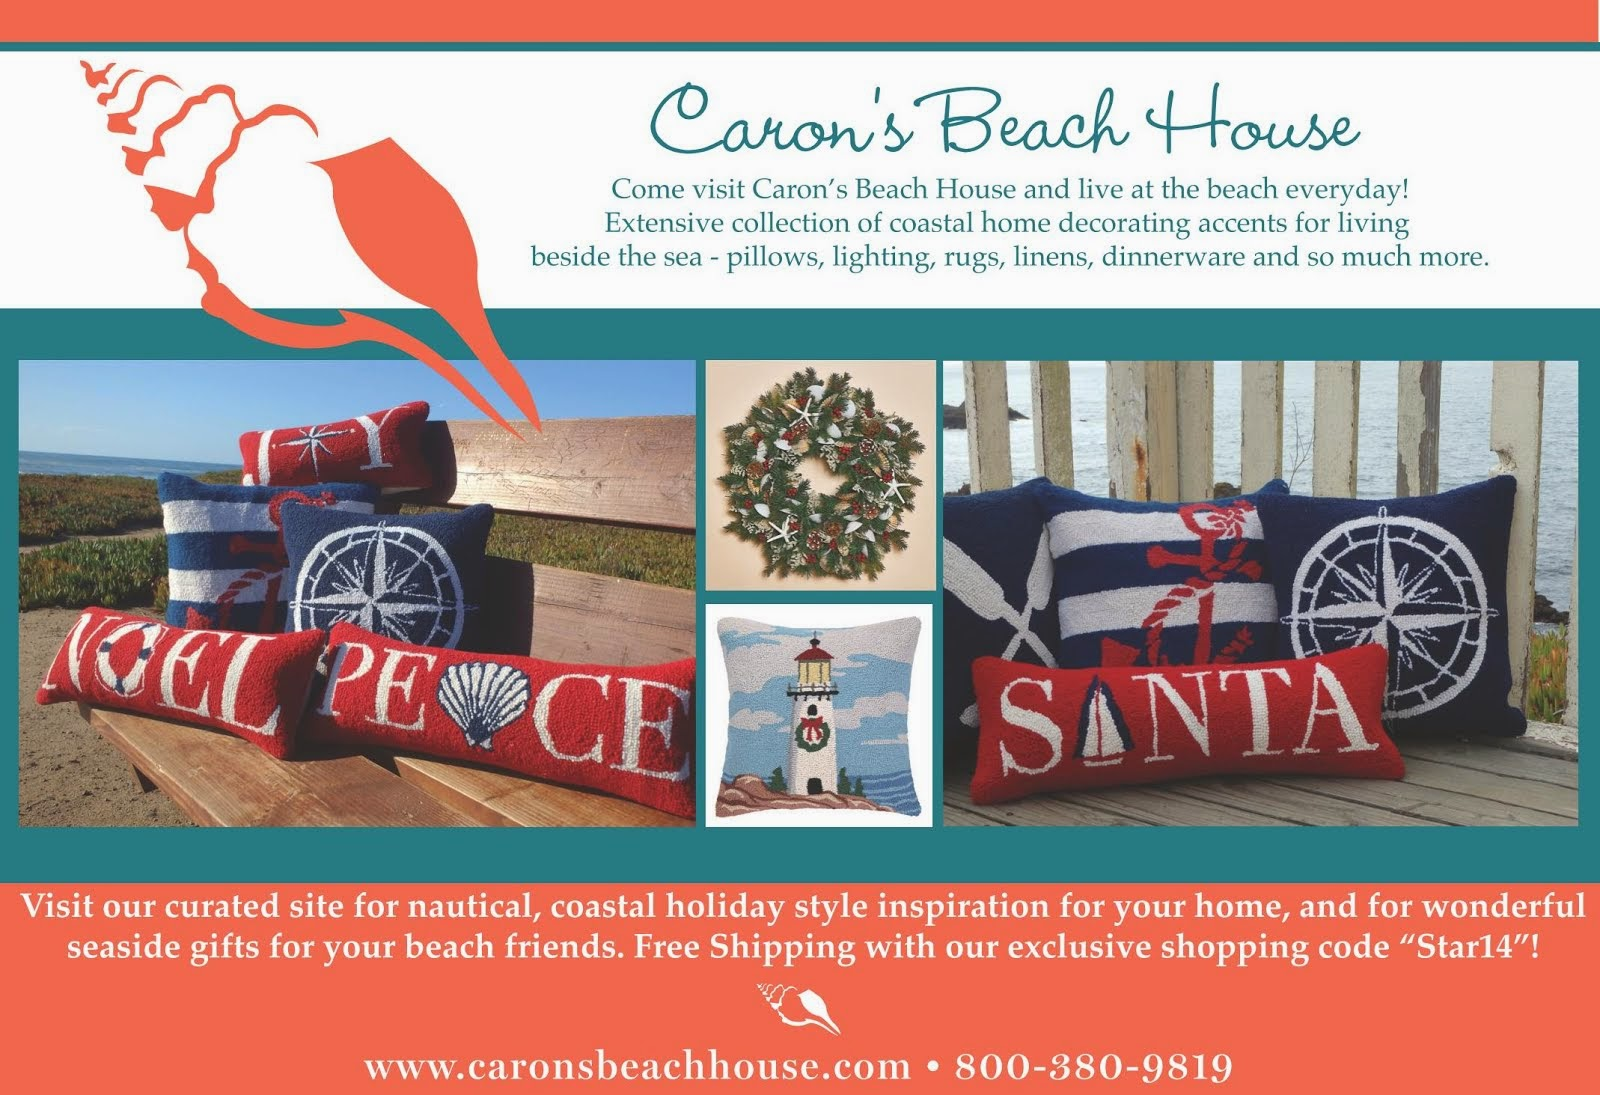 Look for our Ad in Cottages and Bungalows!